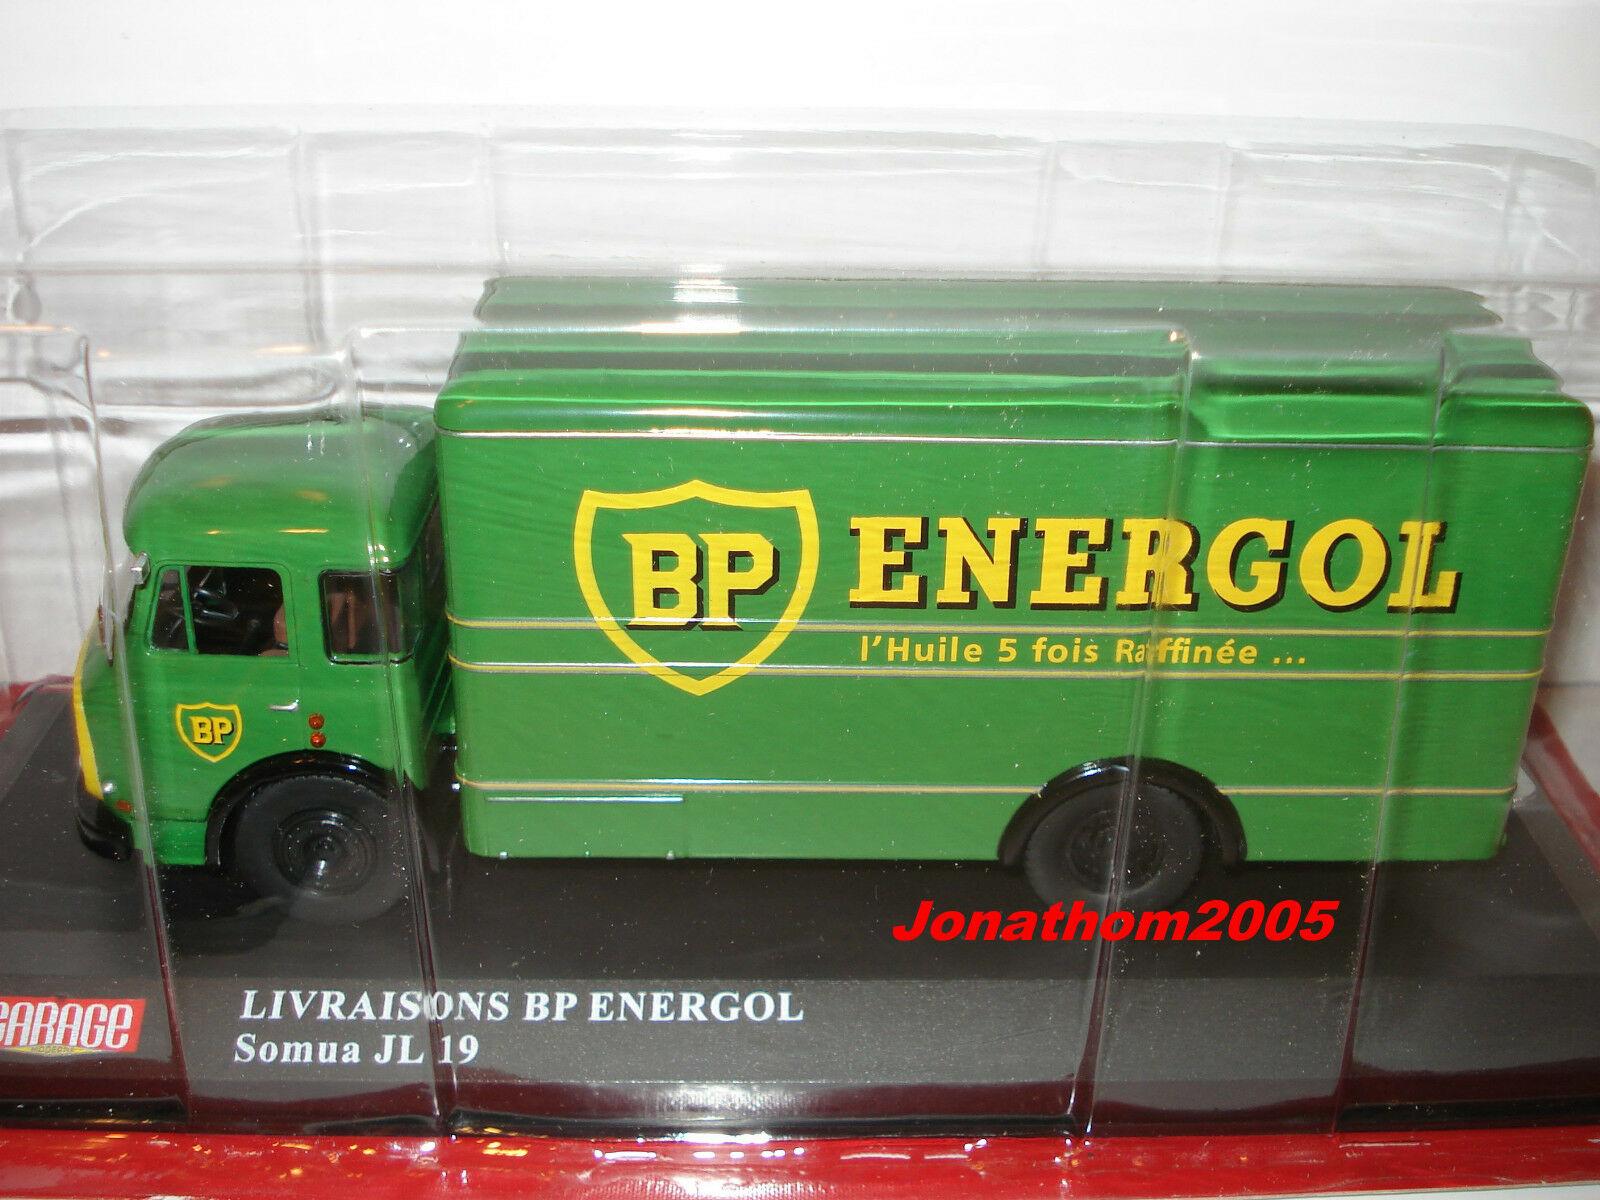 VEHICLES OF THE GARAGE MODERN SOMUA JL 19 DELIVERIES BP ENERGOL to the 1 43°